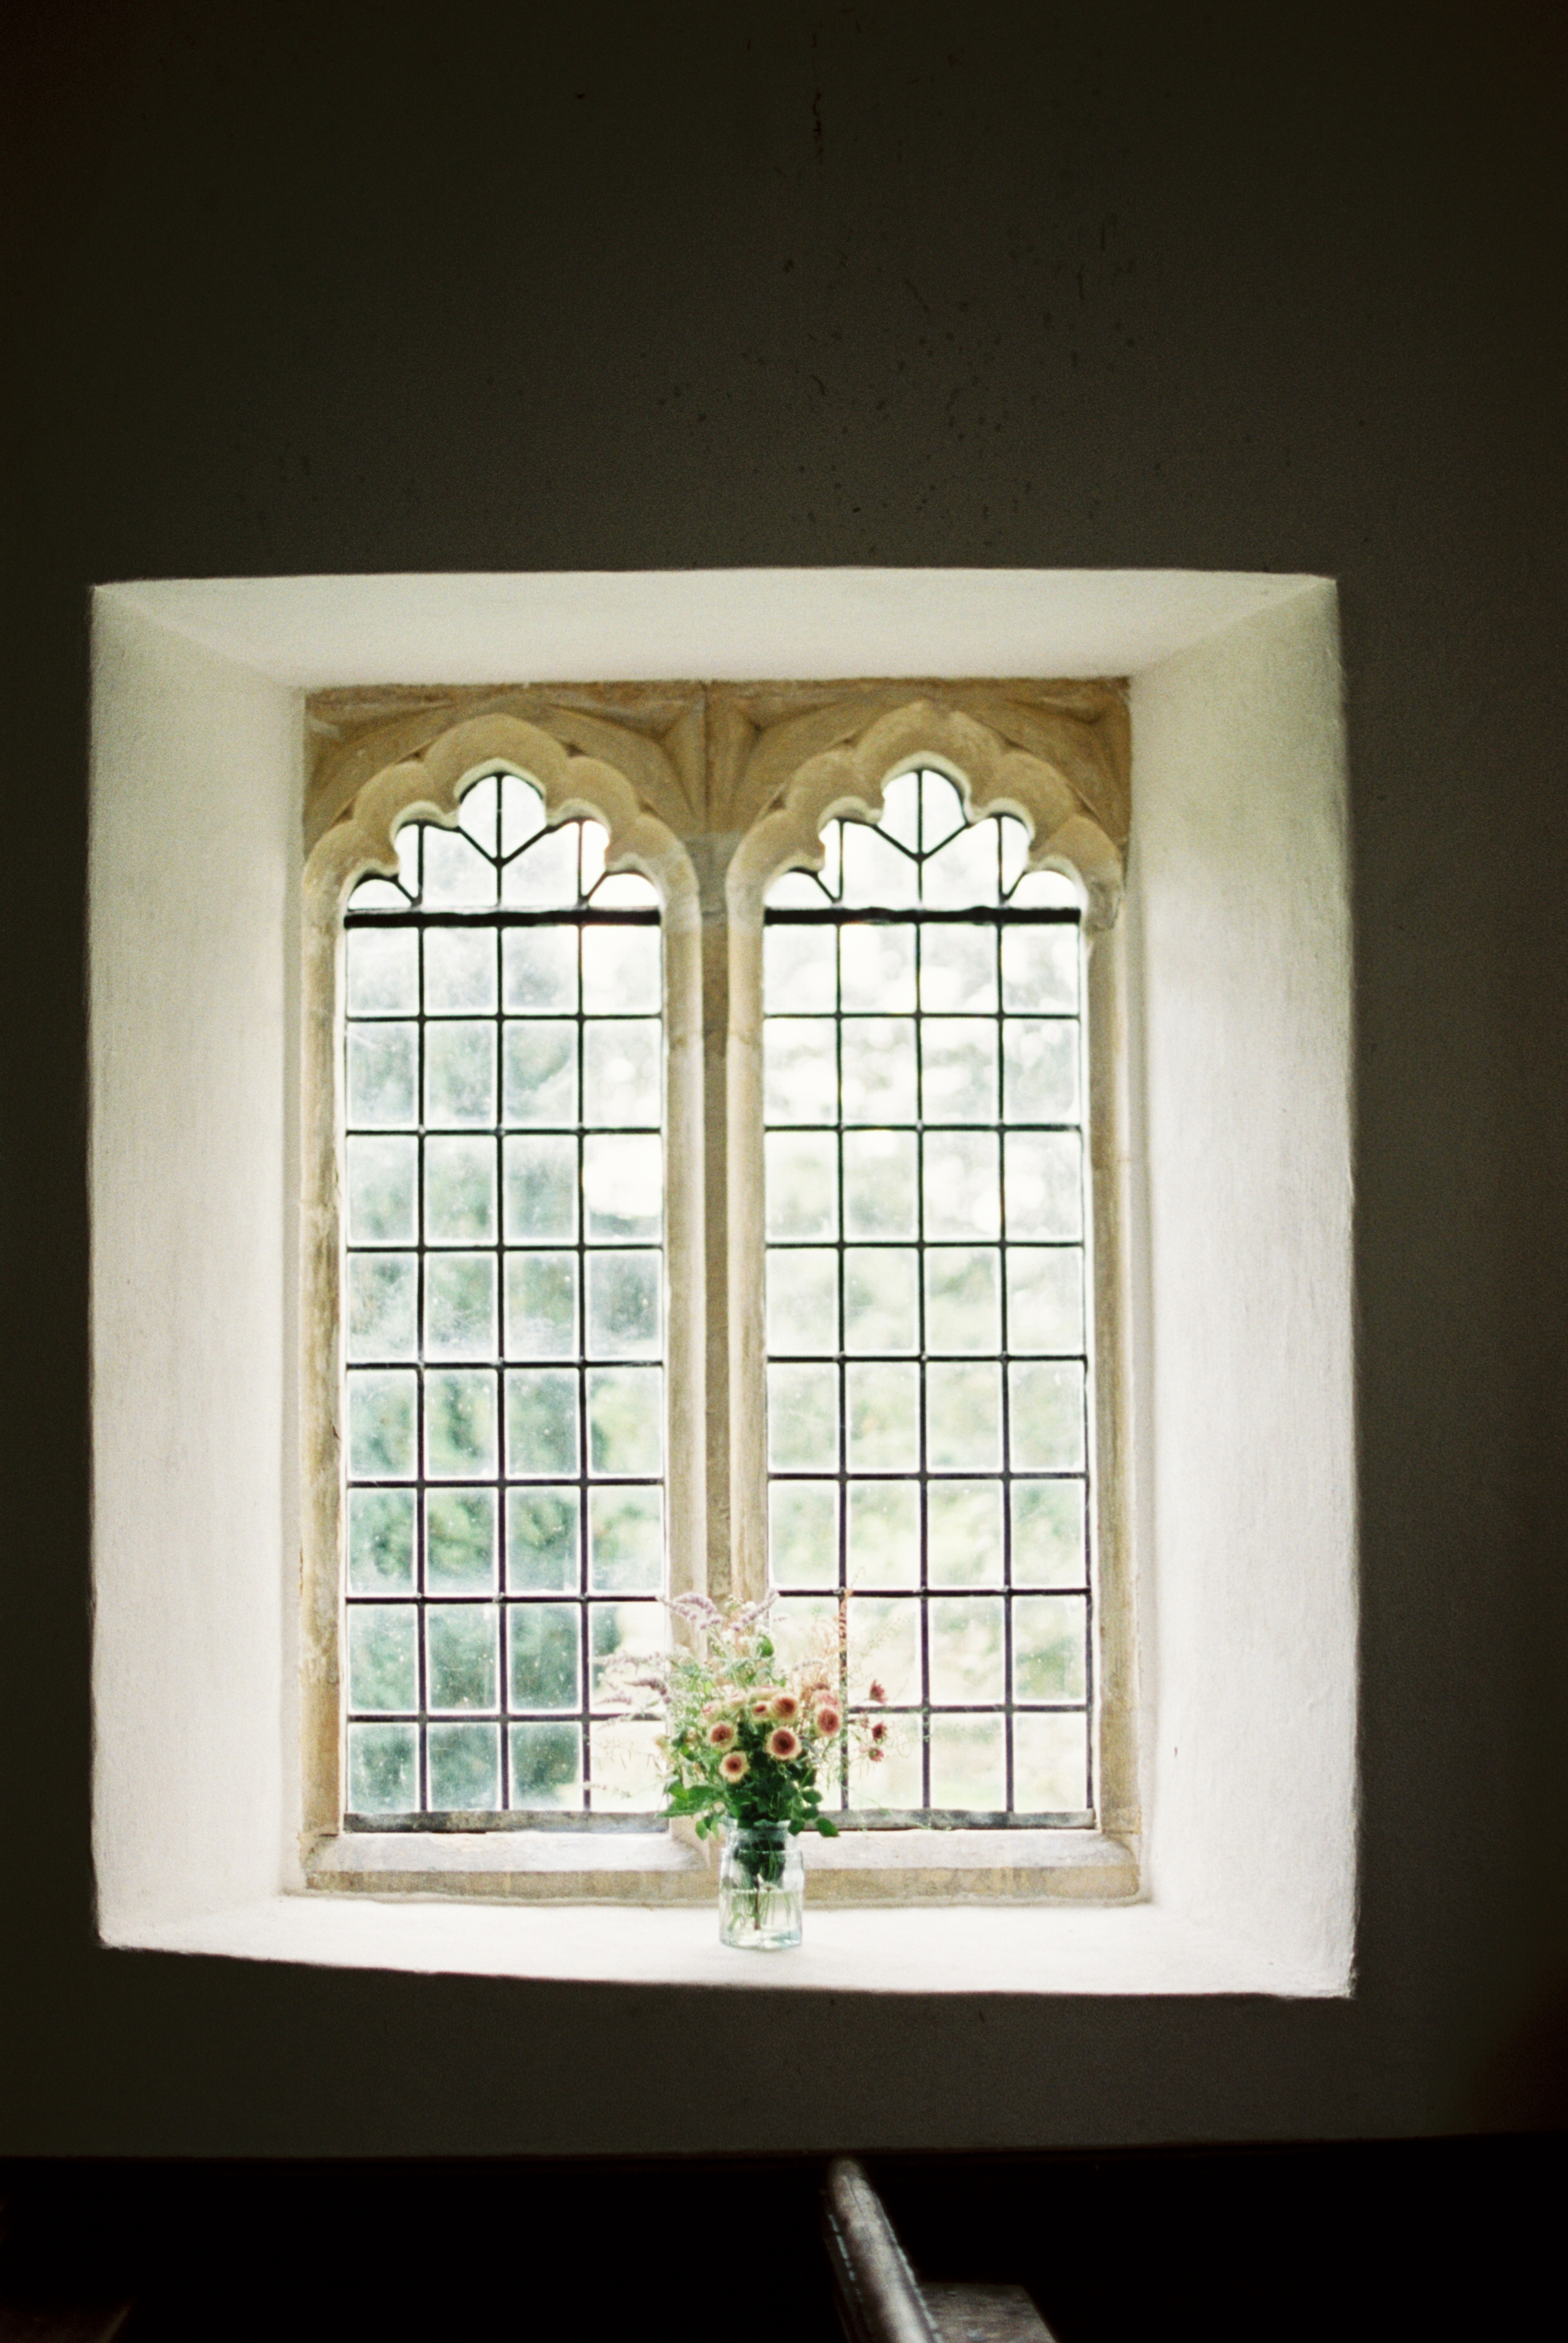 Interior-church-window-and-sill-with-flowers